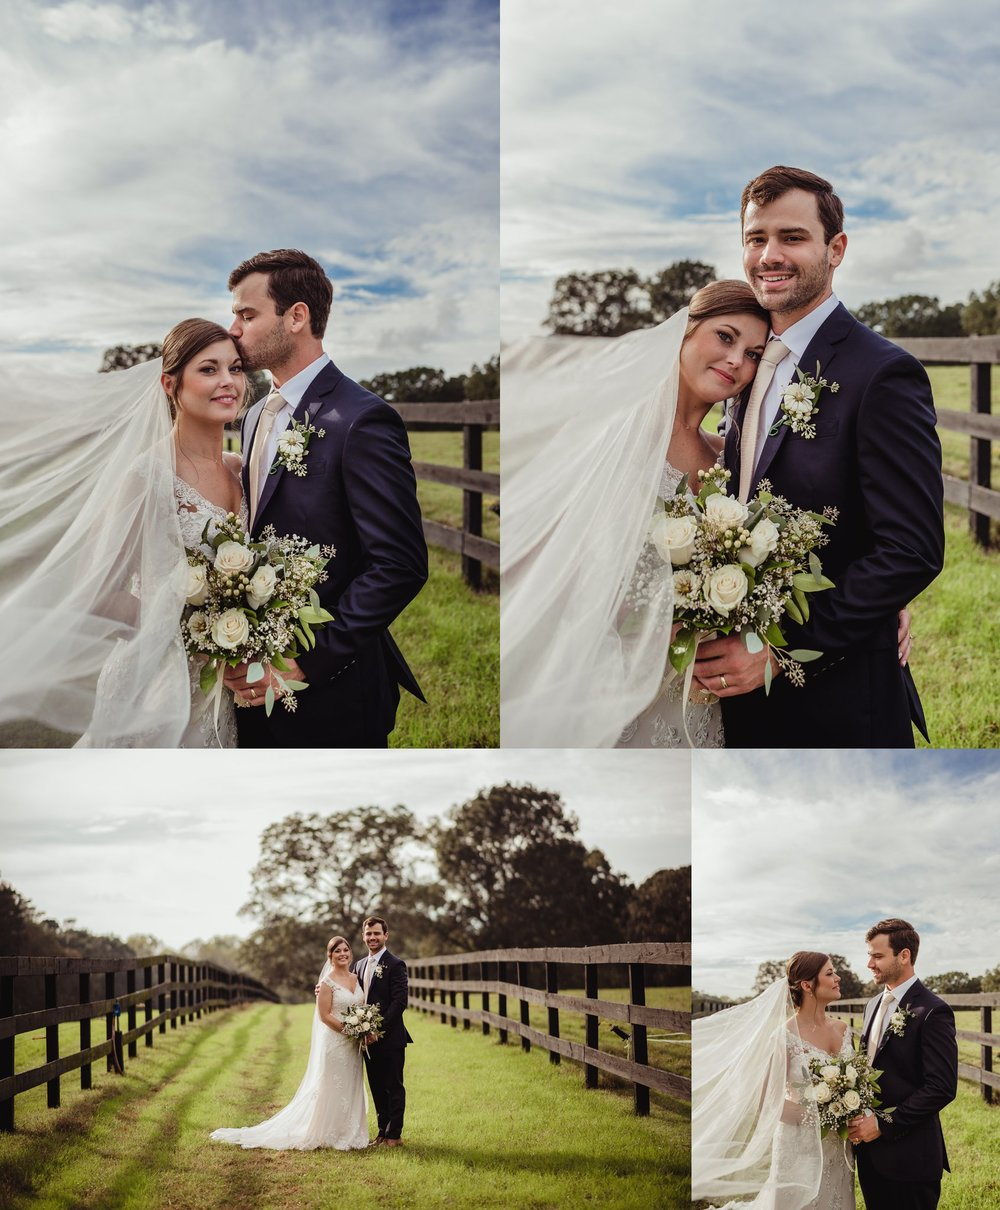 The bride and groom take formal portraits outside before their wedding reception at the Little Herb House in Raleigh, North Carolina. Photos by Rose Trail Images.